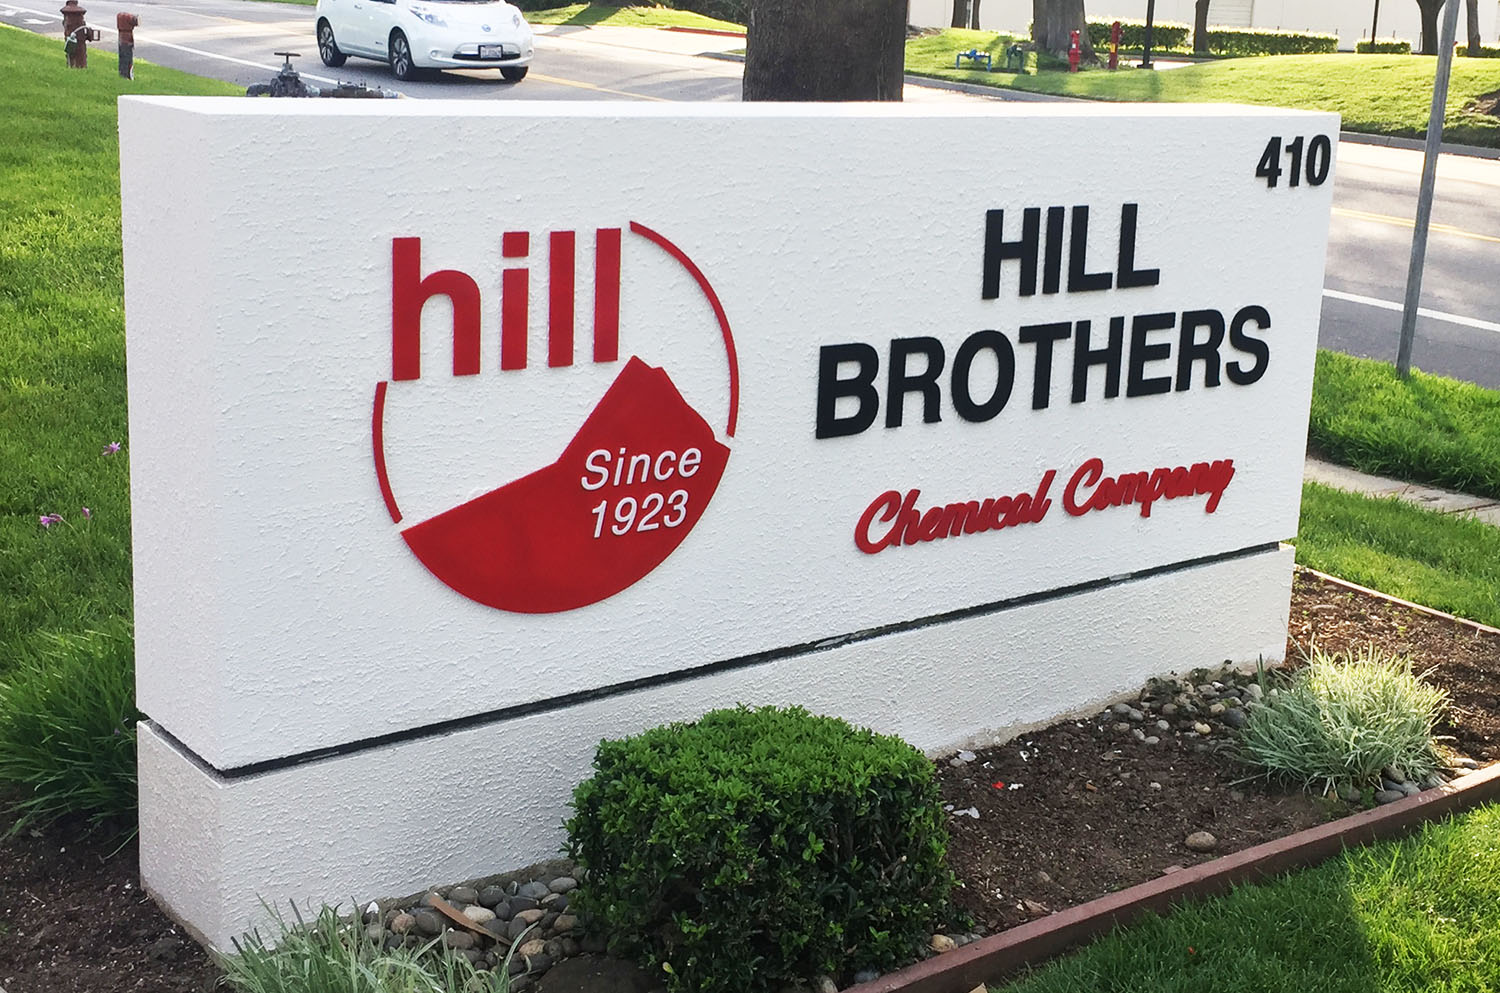 Monument sign for Hill Brothers, San Jose CA